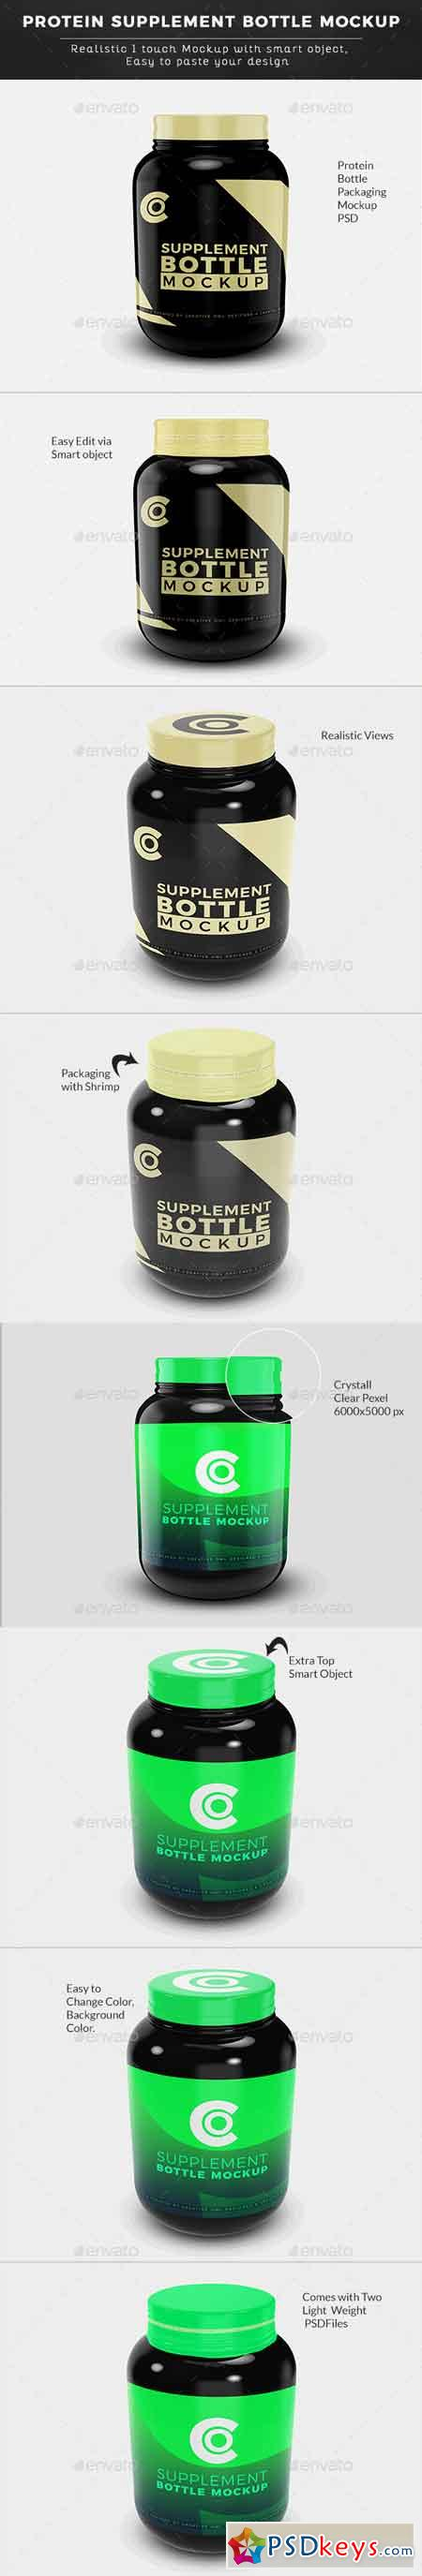 Protein Supplement Bottle Mockup 22710606